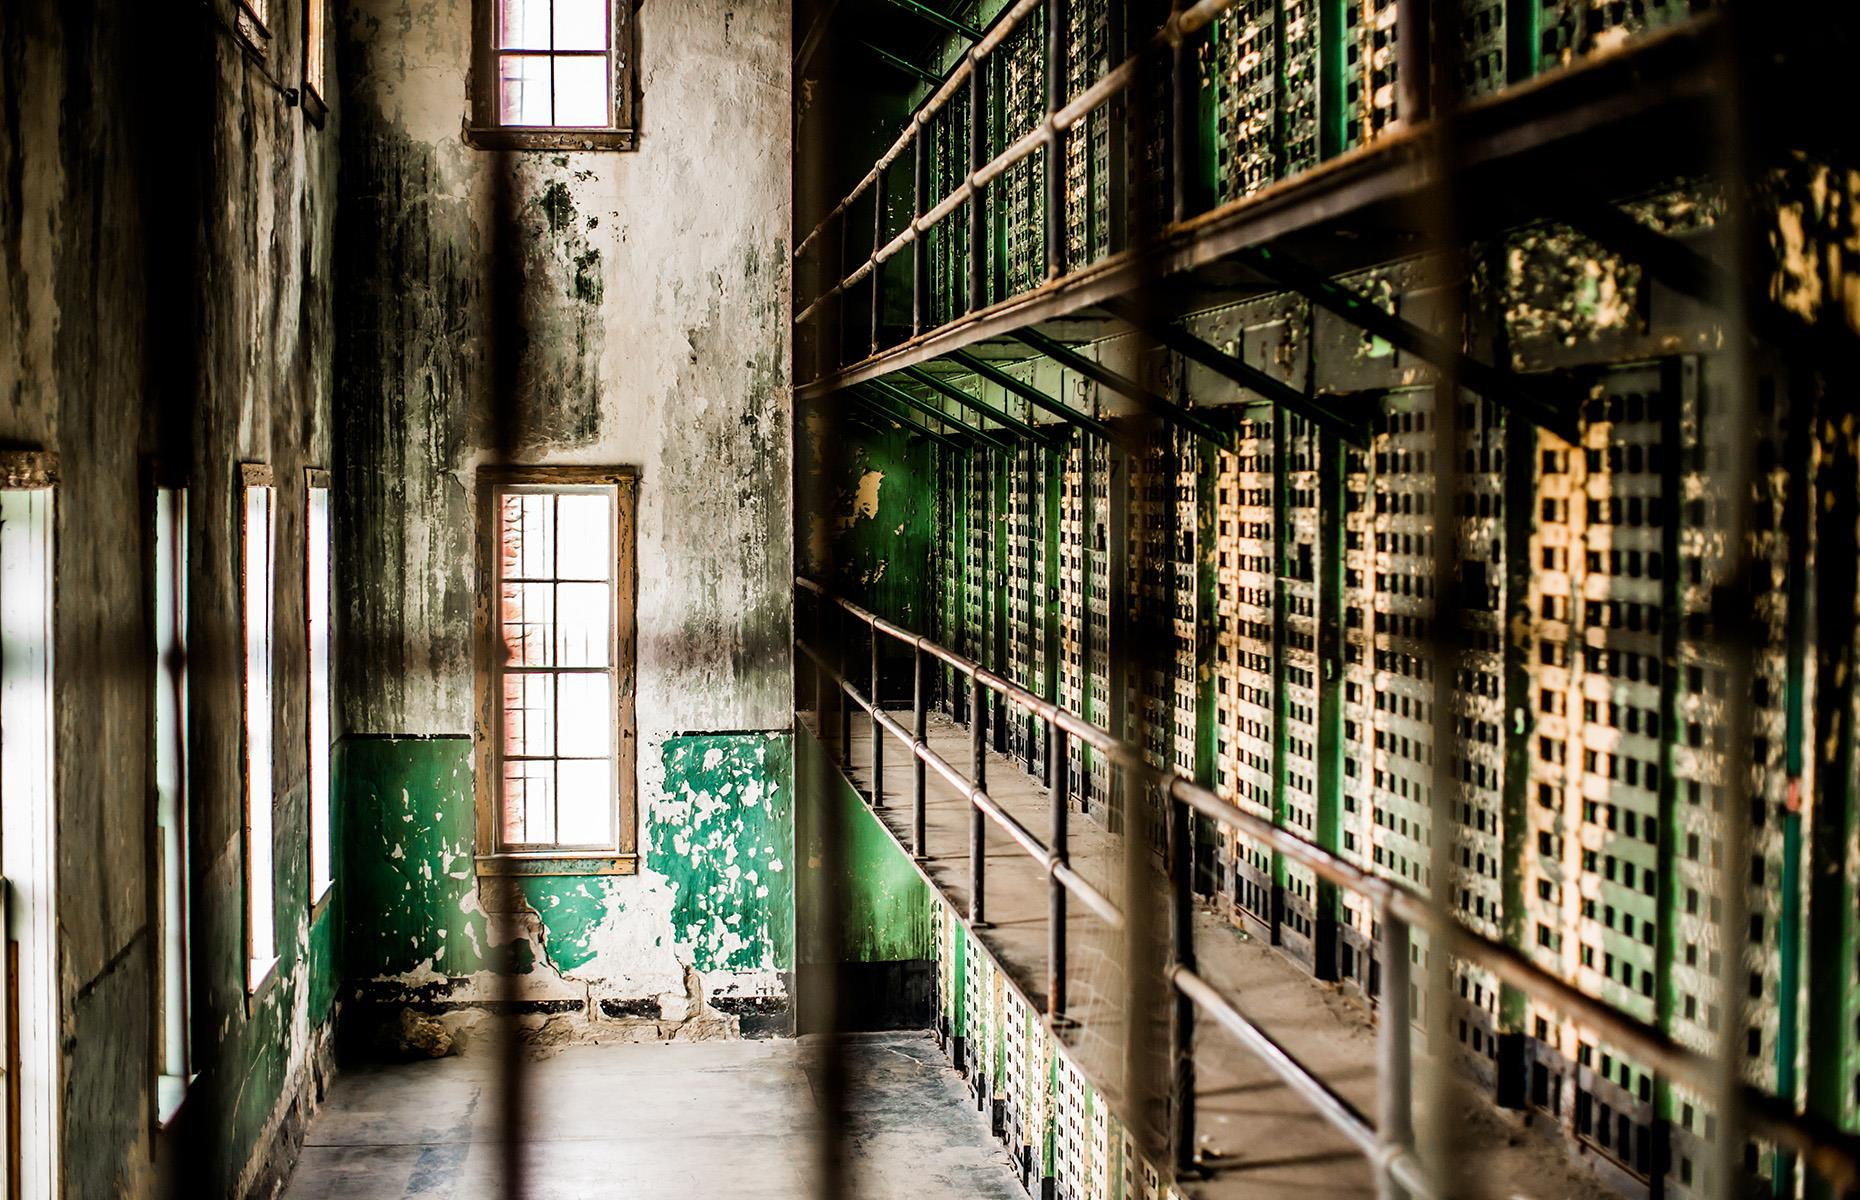 Slide 14 of 52: The creepy corridors and creaking cell blocks of the Old Idaho State Penitentiary were built in the early 1870s and, during the prison's century in operation, some of the state's most formidable criminals were incarcerated here. But by the 1970s the prison was outdated, with poor sanitation and inadequate space for the constant influx of inmates. The prisoners were transferred elsewhere, and the facility was finally closed. Today, the site is preserved by the Idaho State Historical Society and self-guided tours are currently available – visitors are encouraged to book in advance and are required to wear a mask.